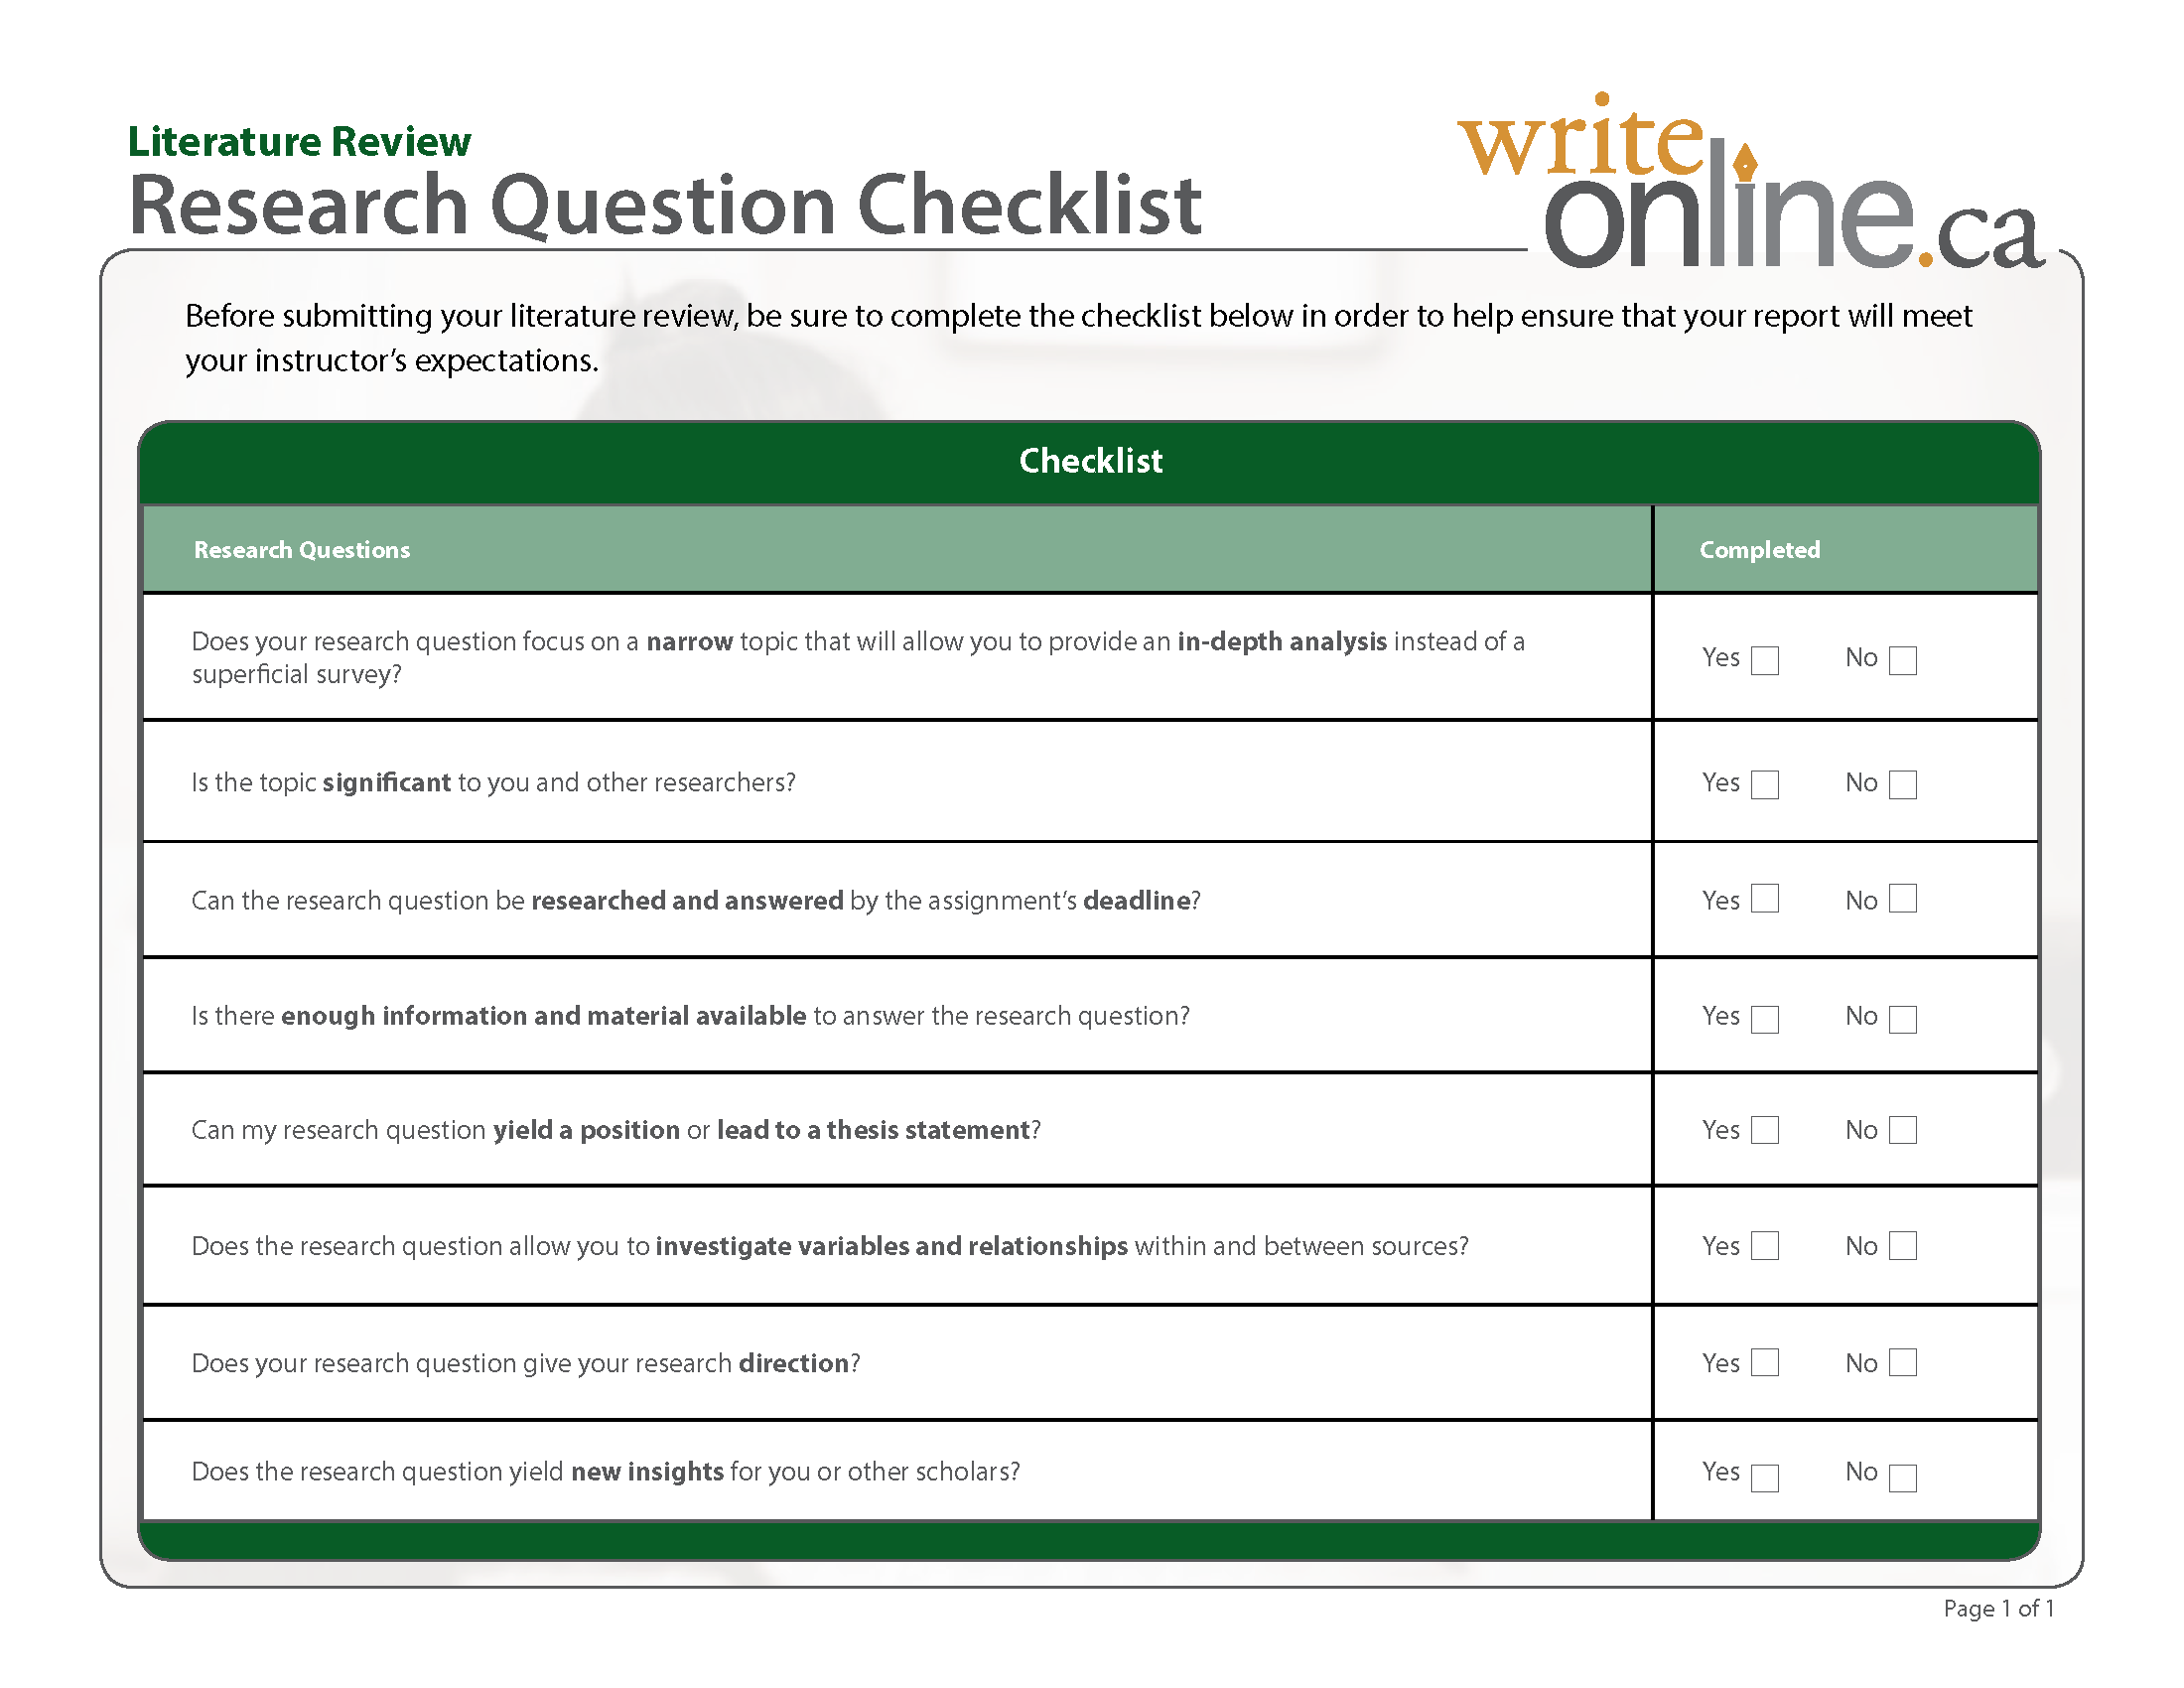 Literature Review Research Questions Checklist